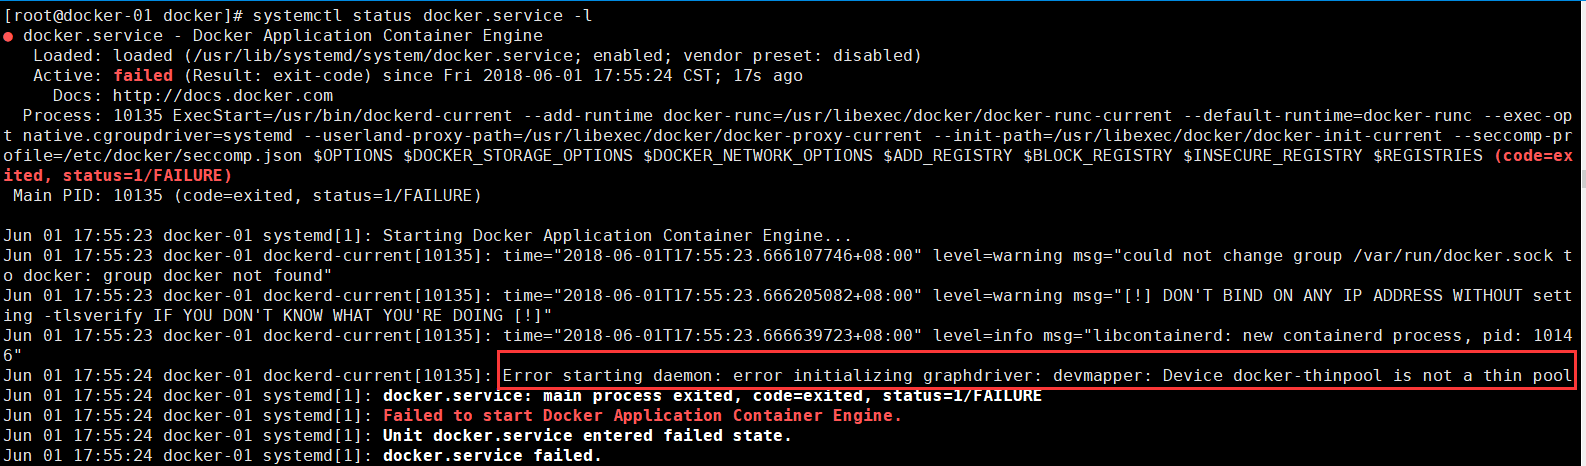 Error starting daemon: error initializing graphdriver: devmapper: Device docker-thinpool is not a thin pool